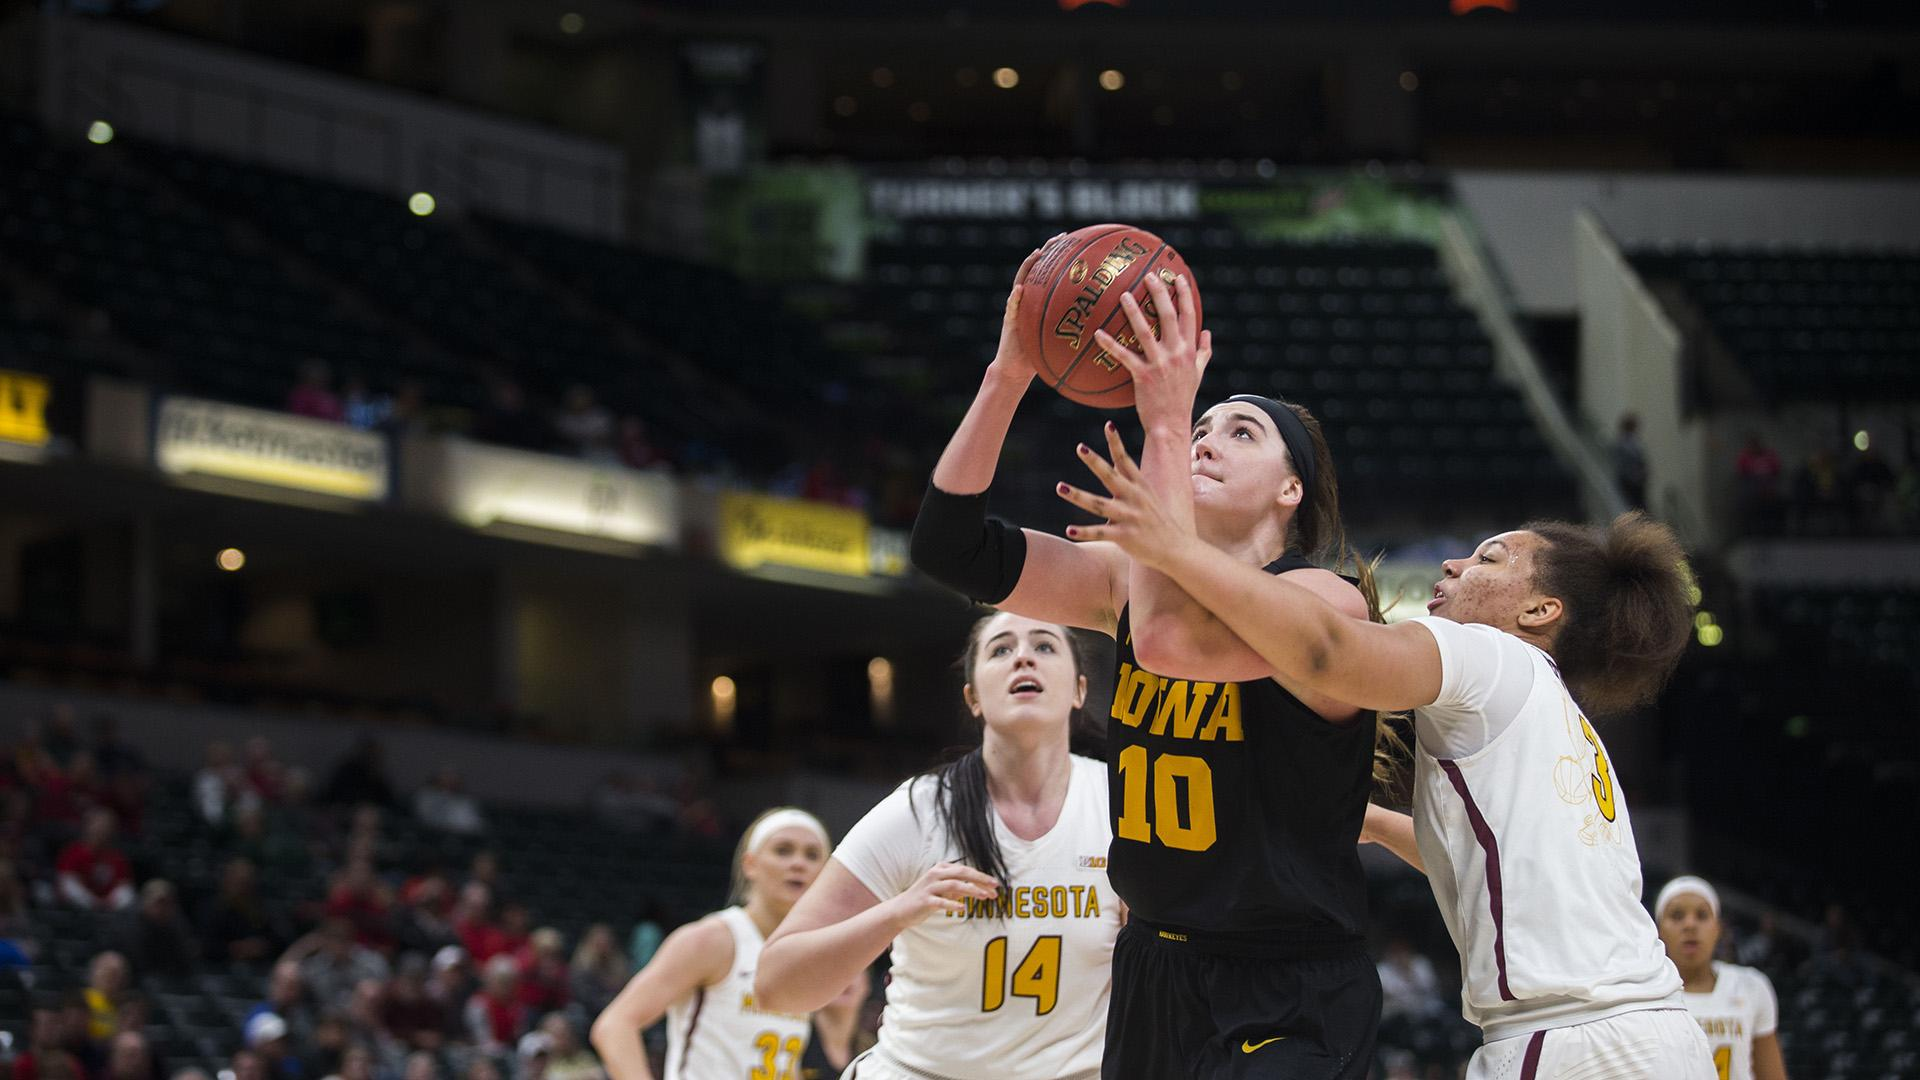 Iowa forward Megan Gustafson attempts a shot during the Iowa/Minnesota Big Ten tournament basketball game at Bankers Life Fieldhouse in Indianapolis on Friday, March, 2, 2018. The Golden Gophers defeated the Hawkeyes, 90-89. (Lily Smith/The Daily Iowan)